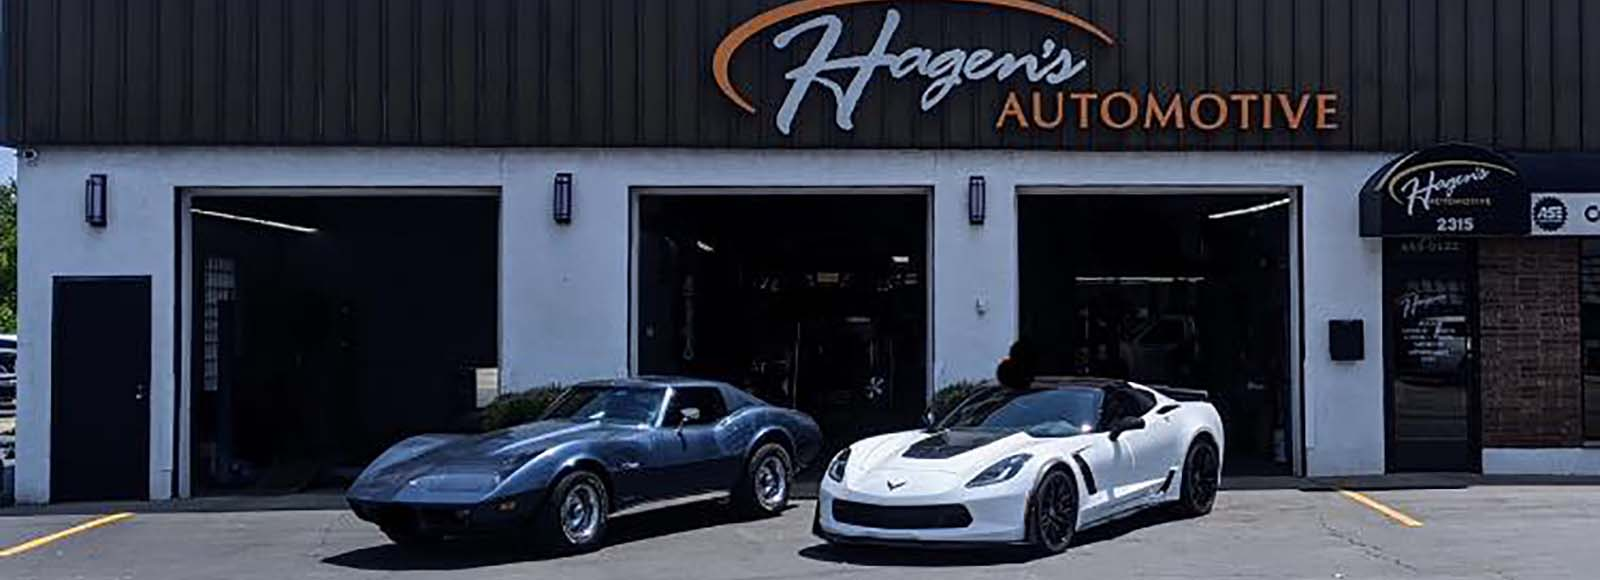 Services at Hagen's Automotive West, auto repair shop in Melrose Park IL